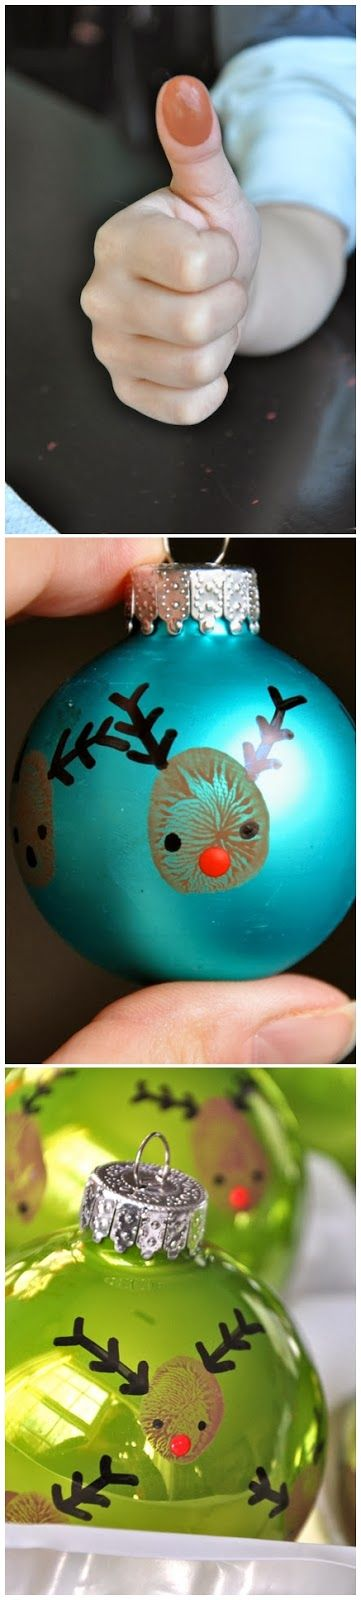 DIY Thumbprint Reindeer Ornament and lots of DIY keepsake ornaments                                                                                                                                                                                 More